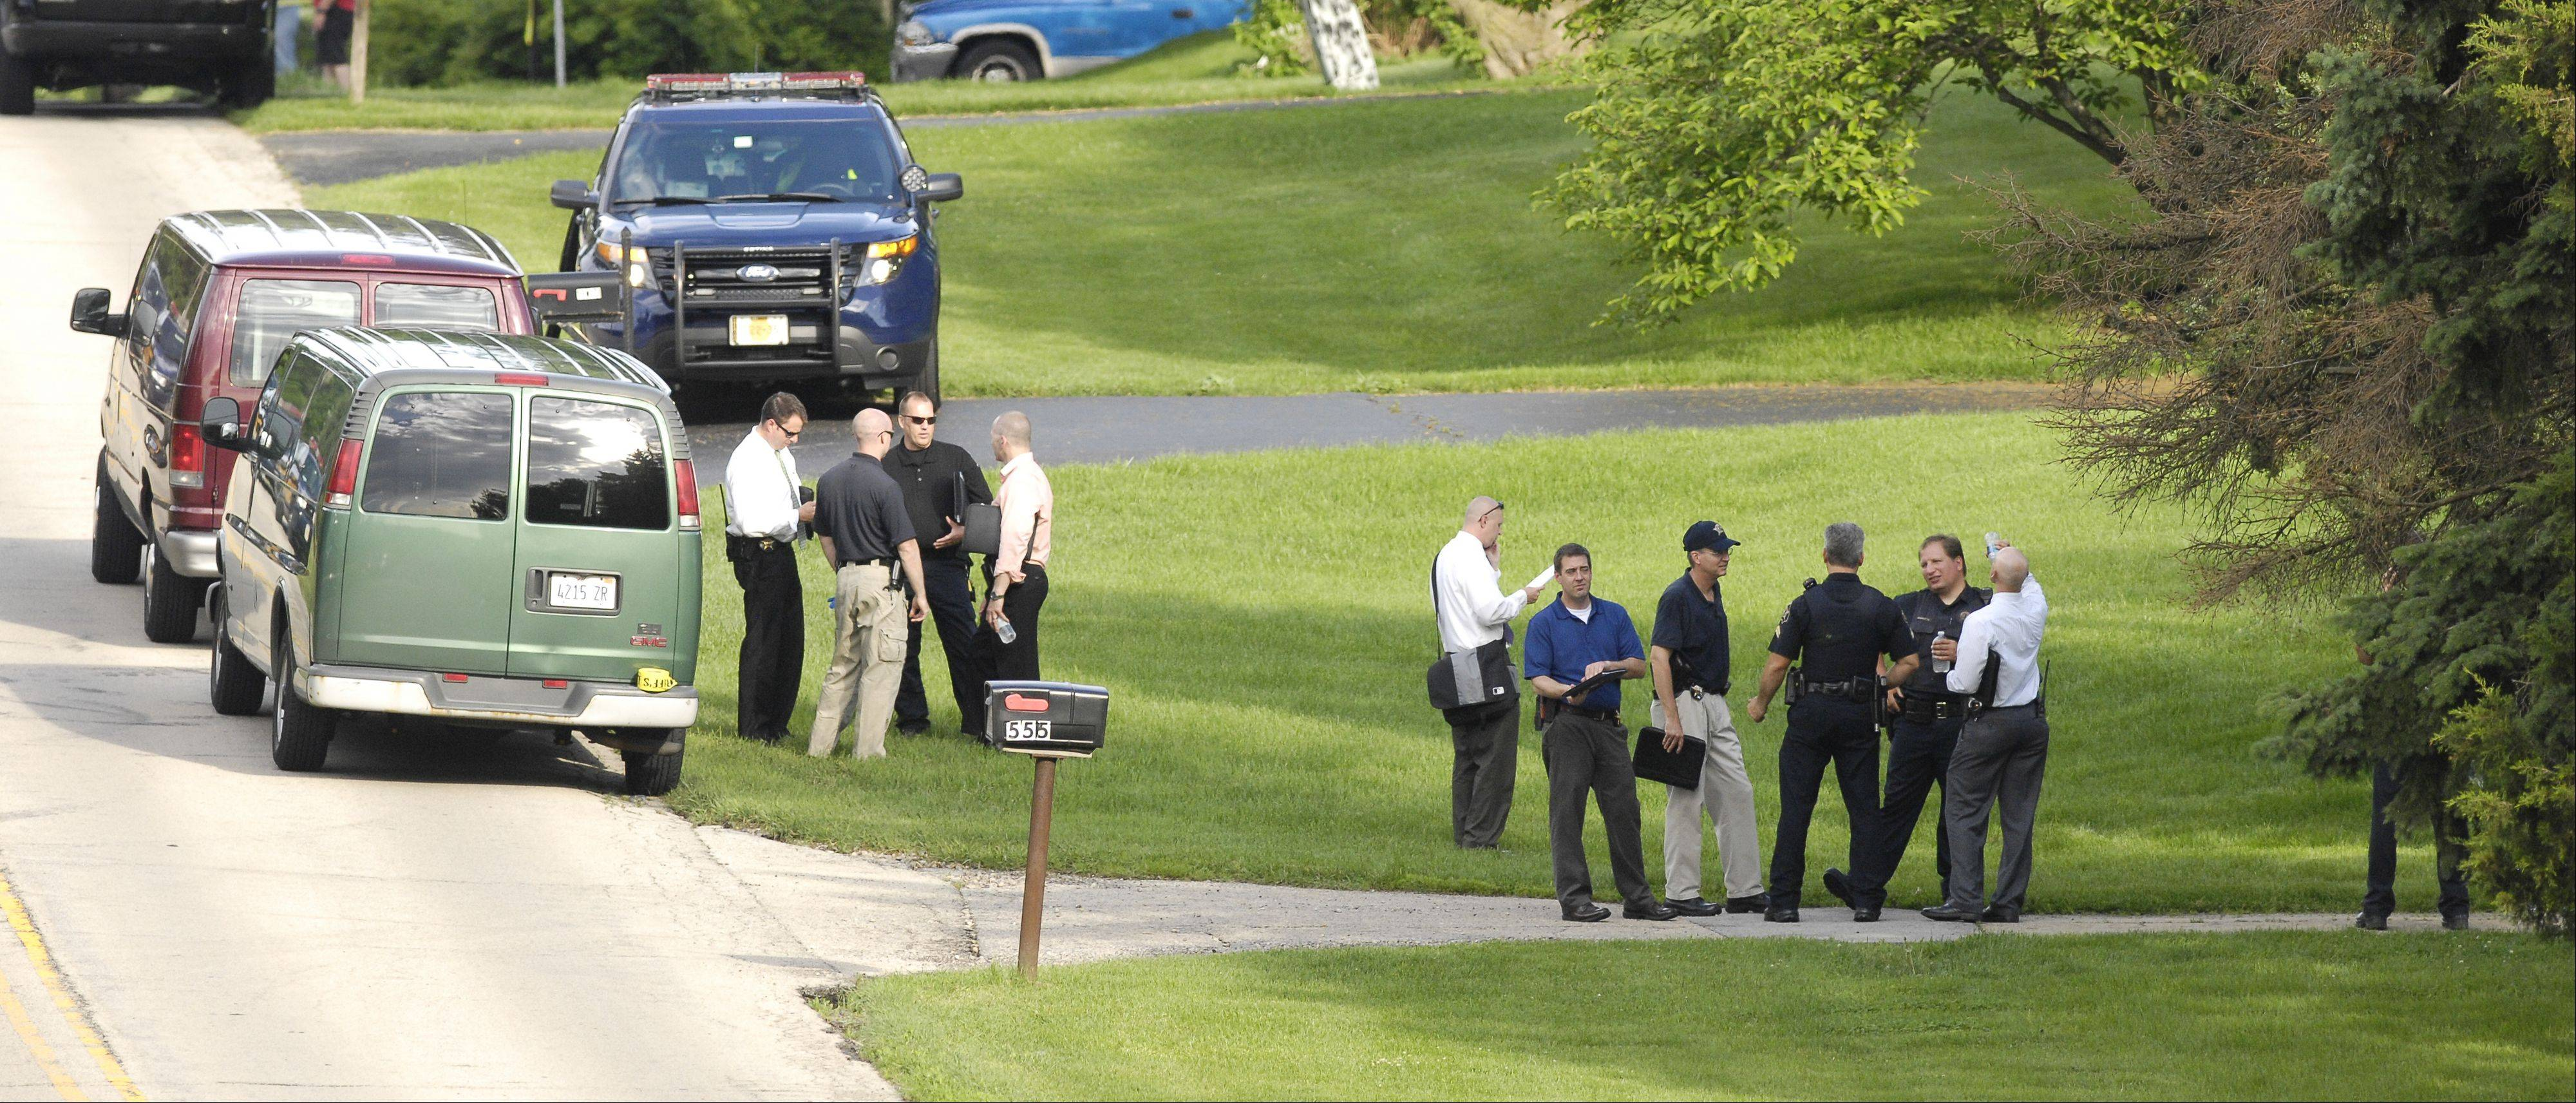 4 killed in apparent DuPage County murder-suicide, sources say